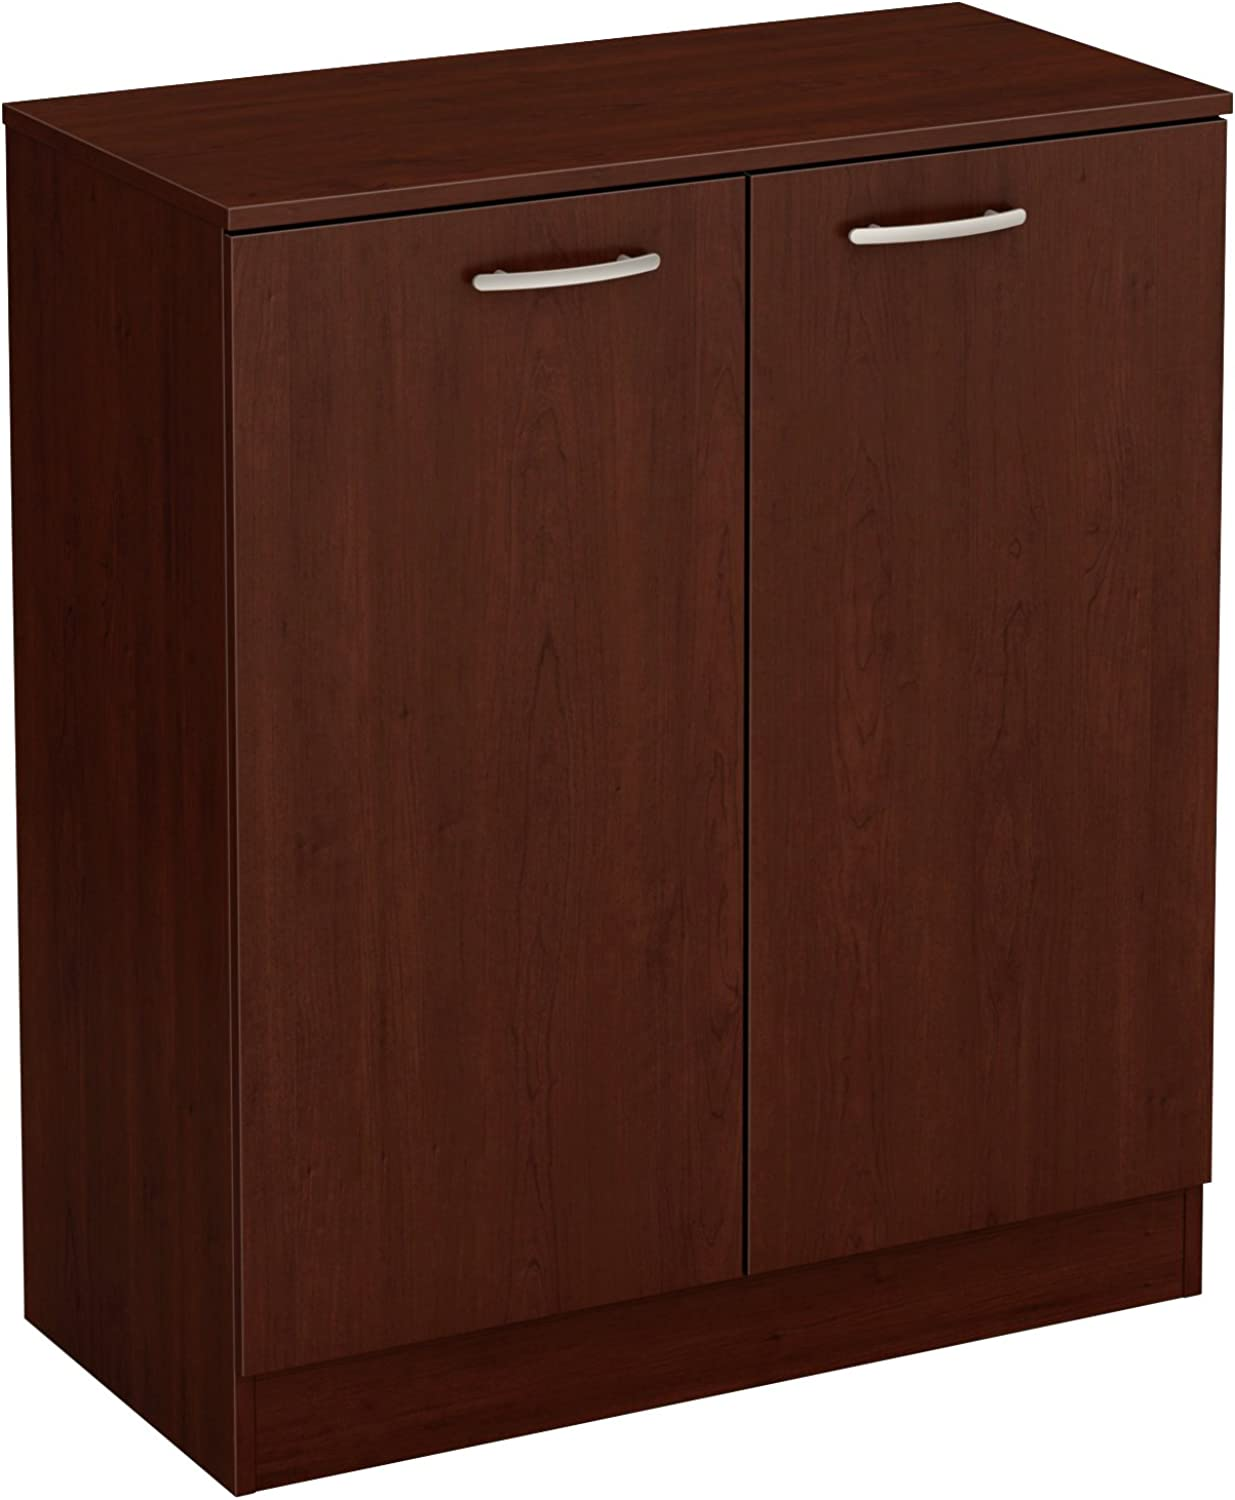 South Shore Axess 2-Door Storage Cabinet, Royal Cherry